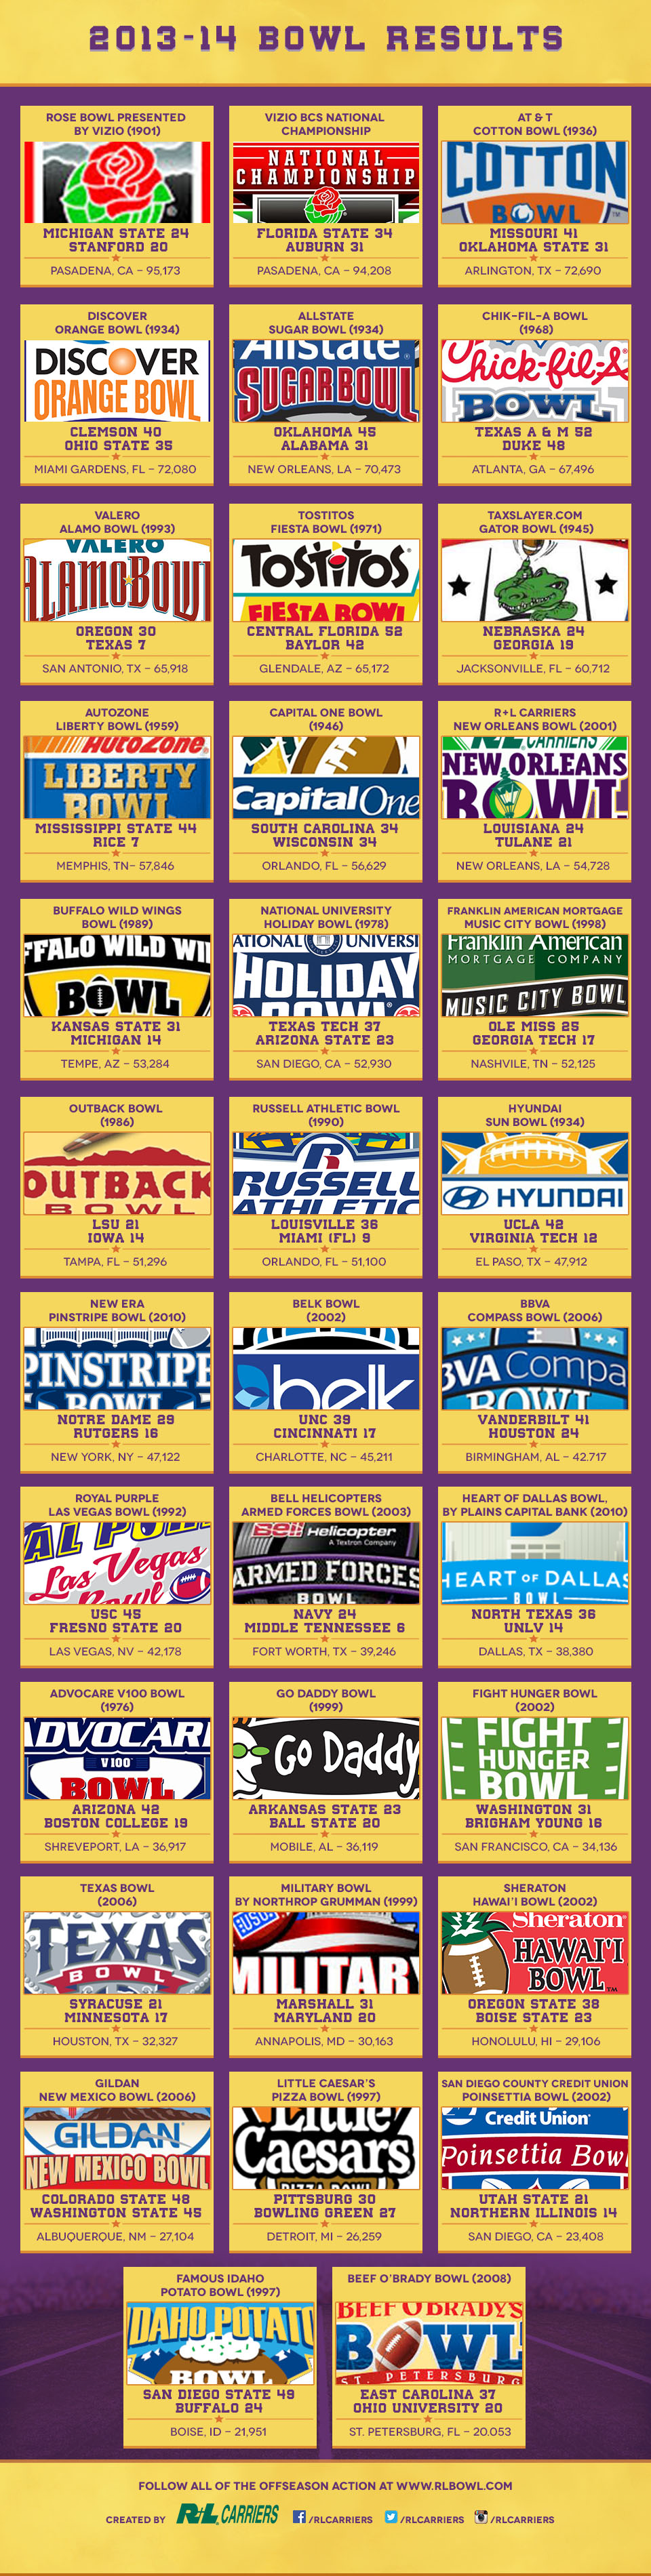 2013-2014 College Bowl Season Recap | College Football at its Best